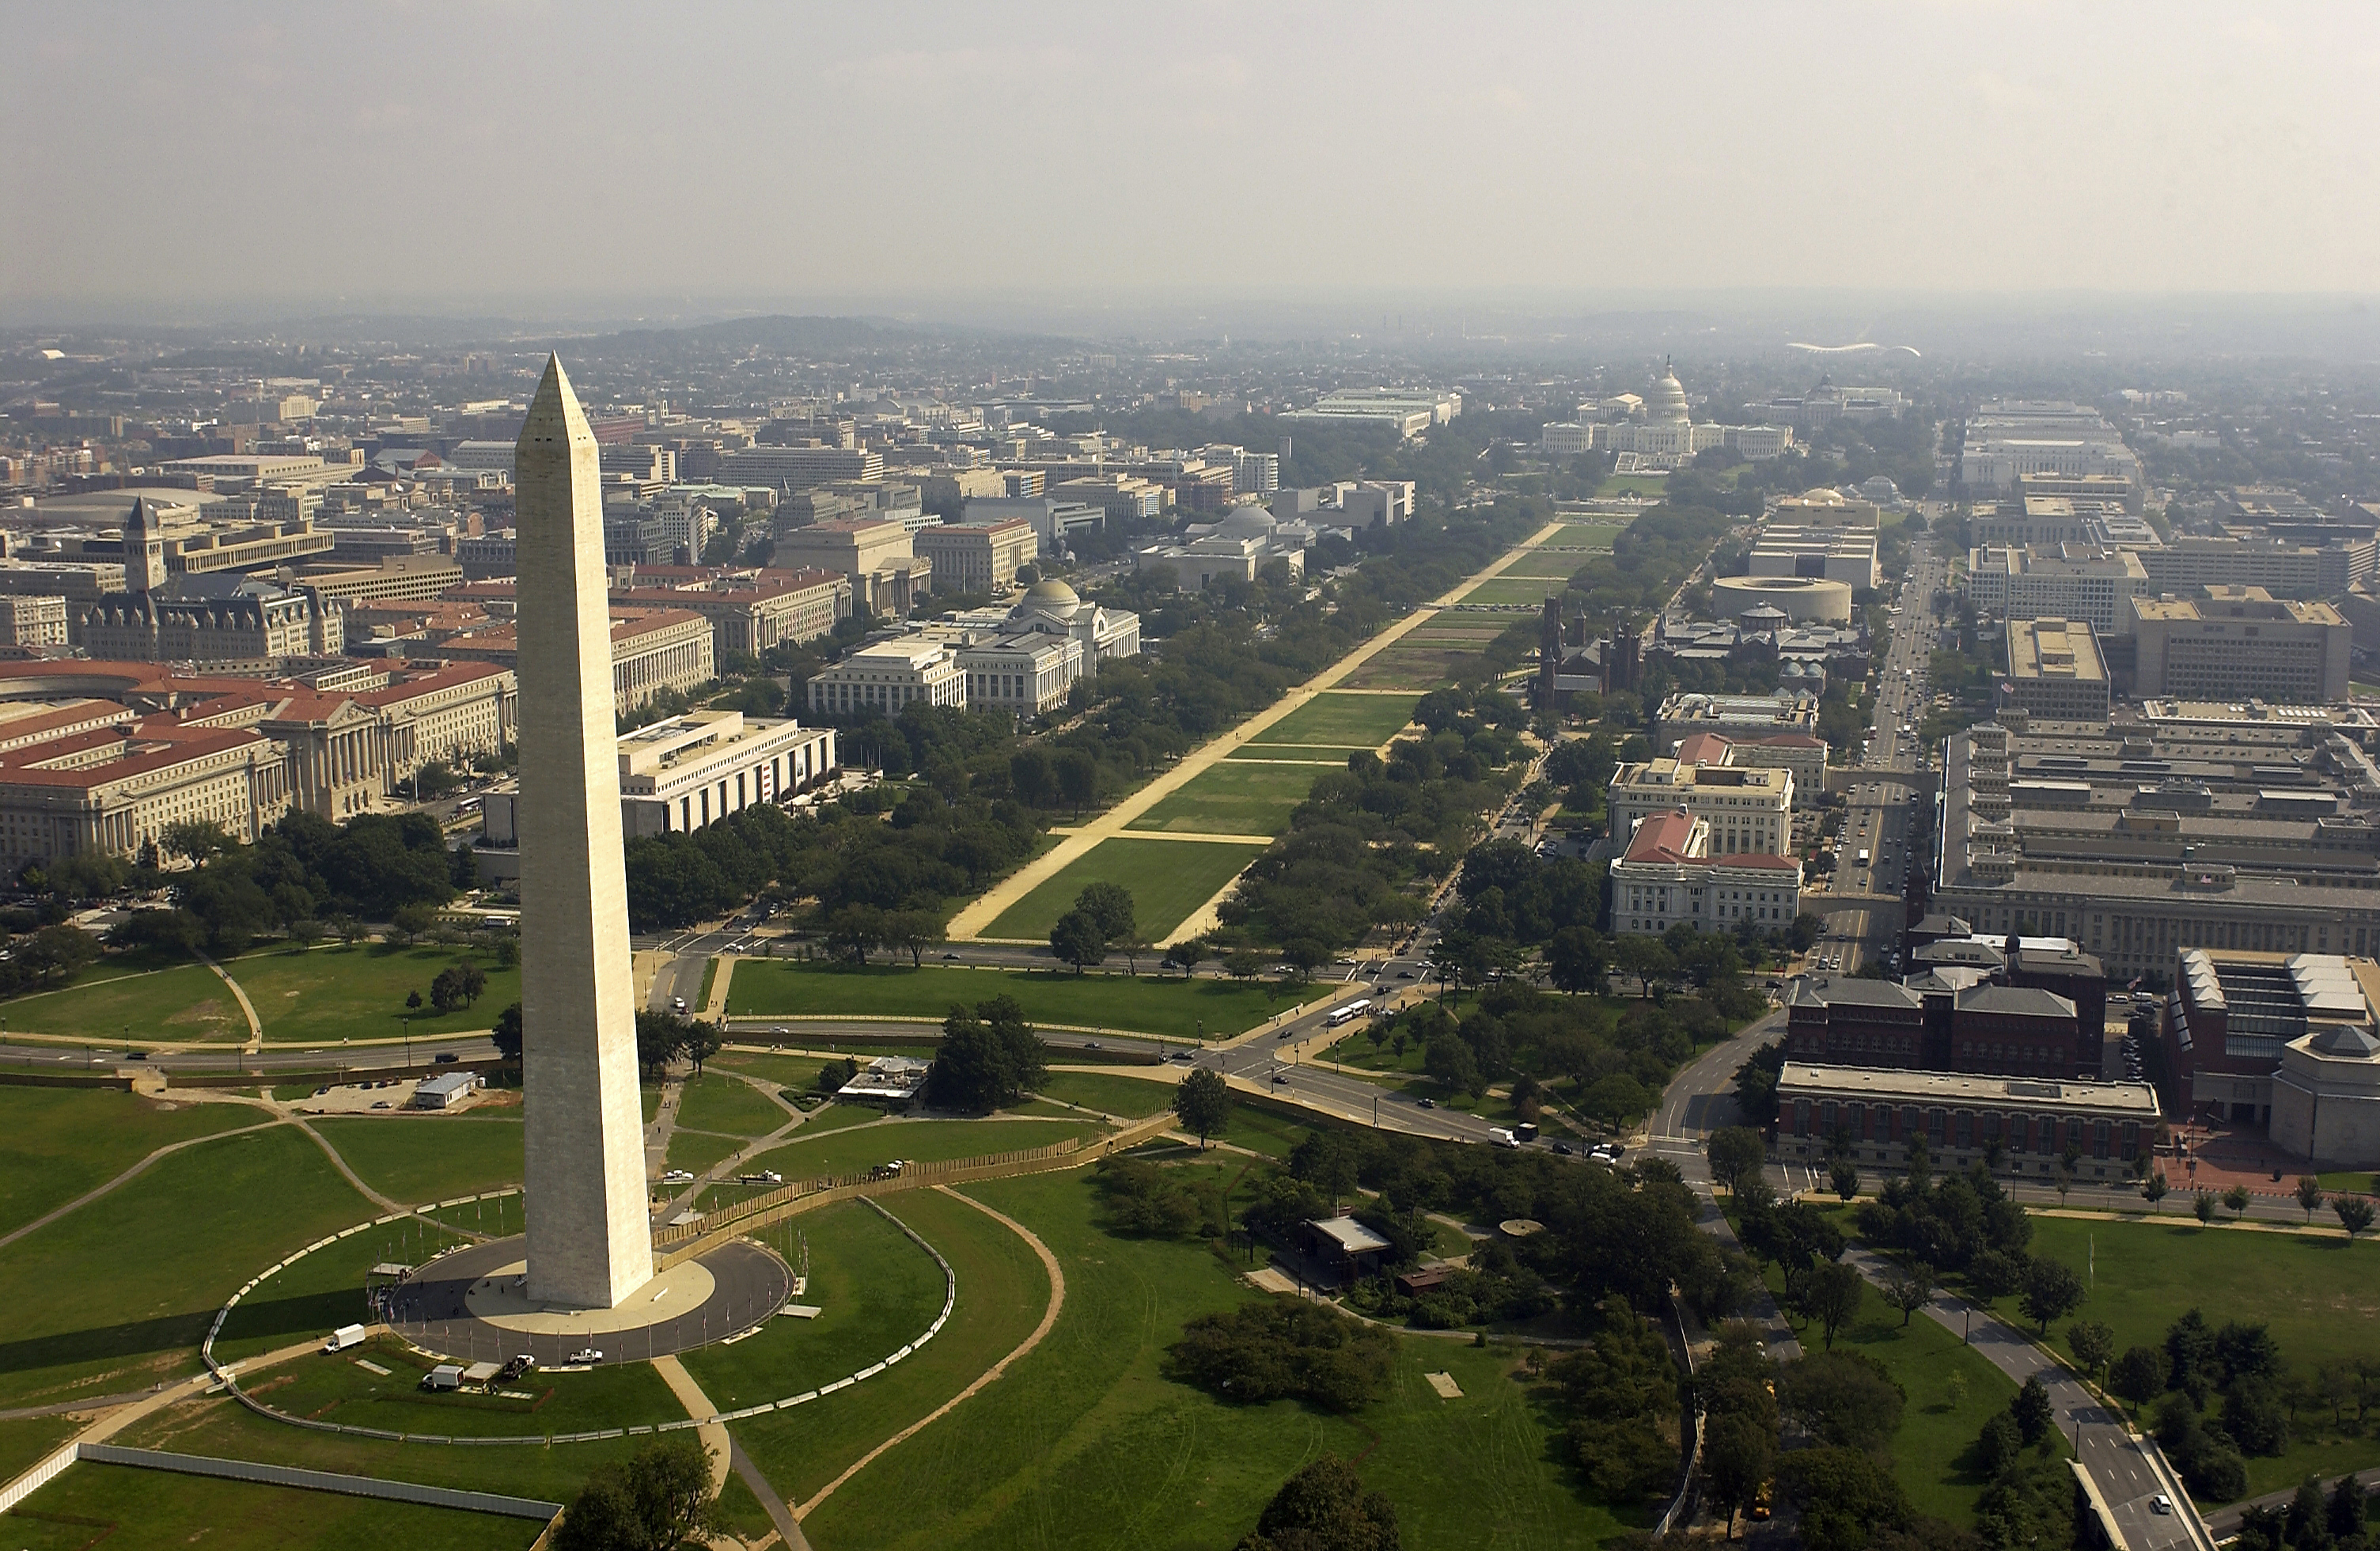 US_Navy_030926-F-2828D-307_Aerial_view_of_the_Washington_Monument